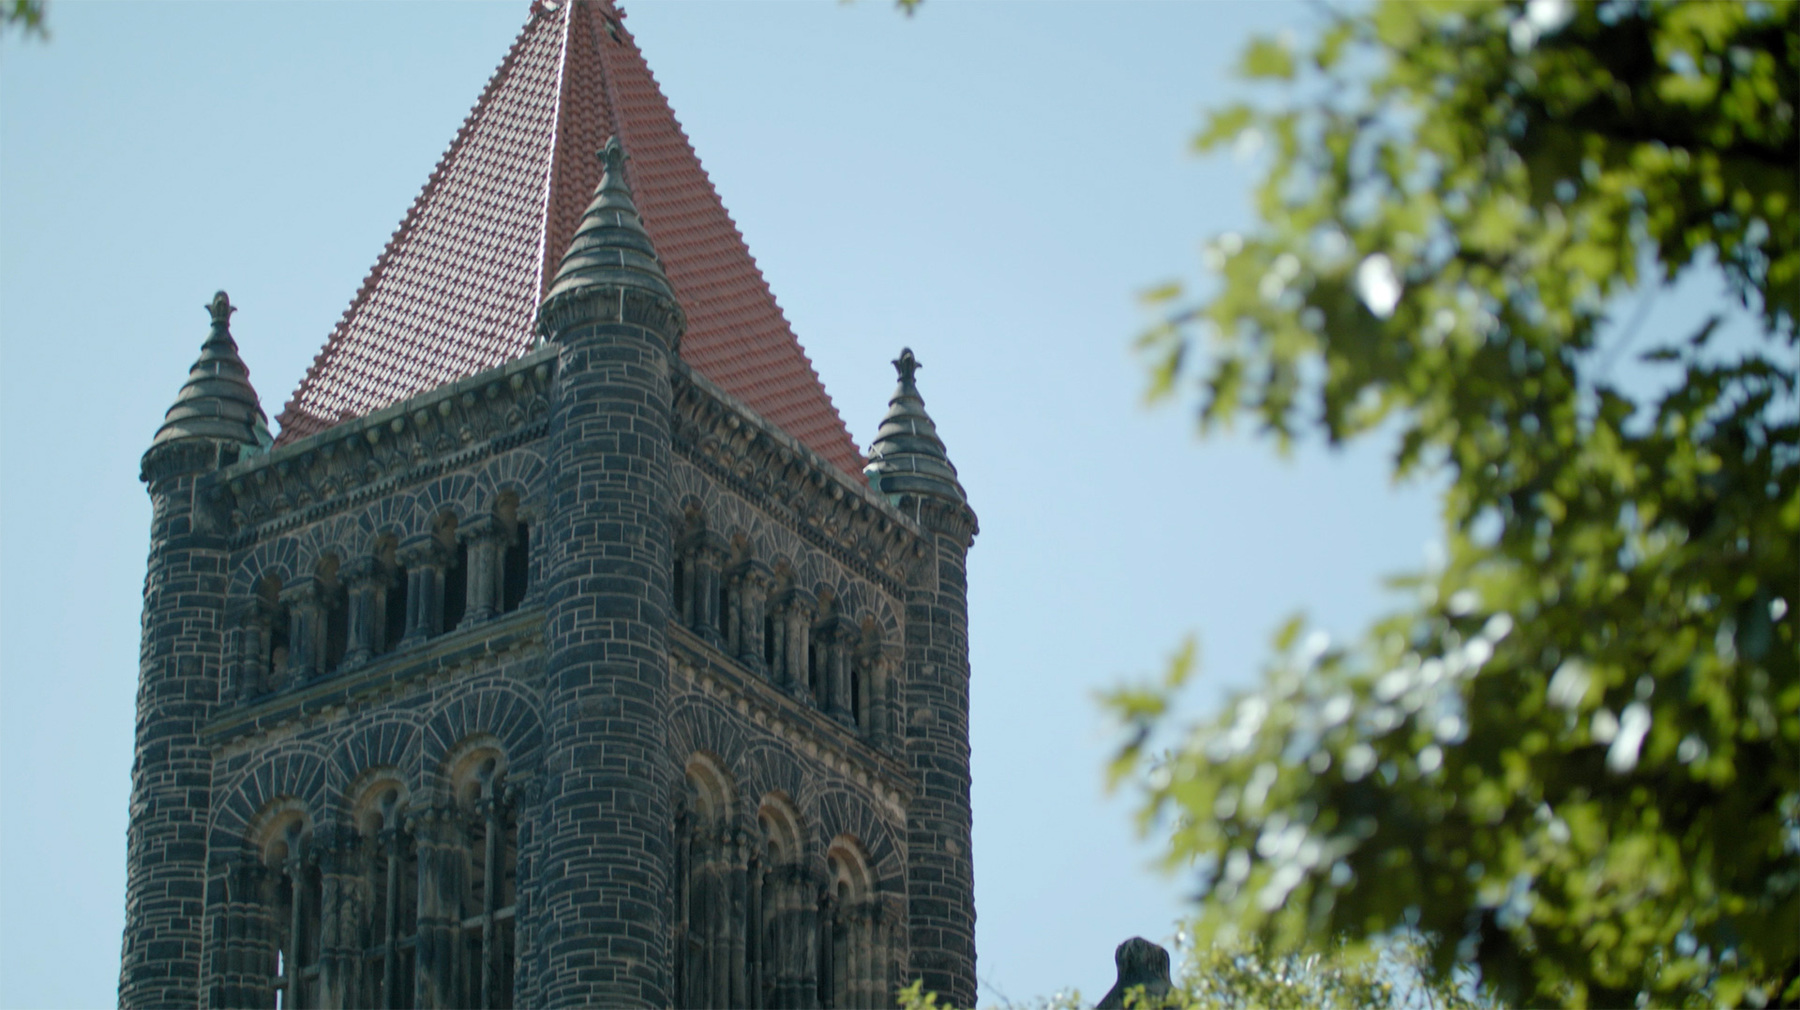 Altgeld bell tower. Still from the video by Video Services | Public Affairs